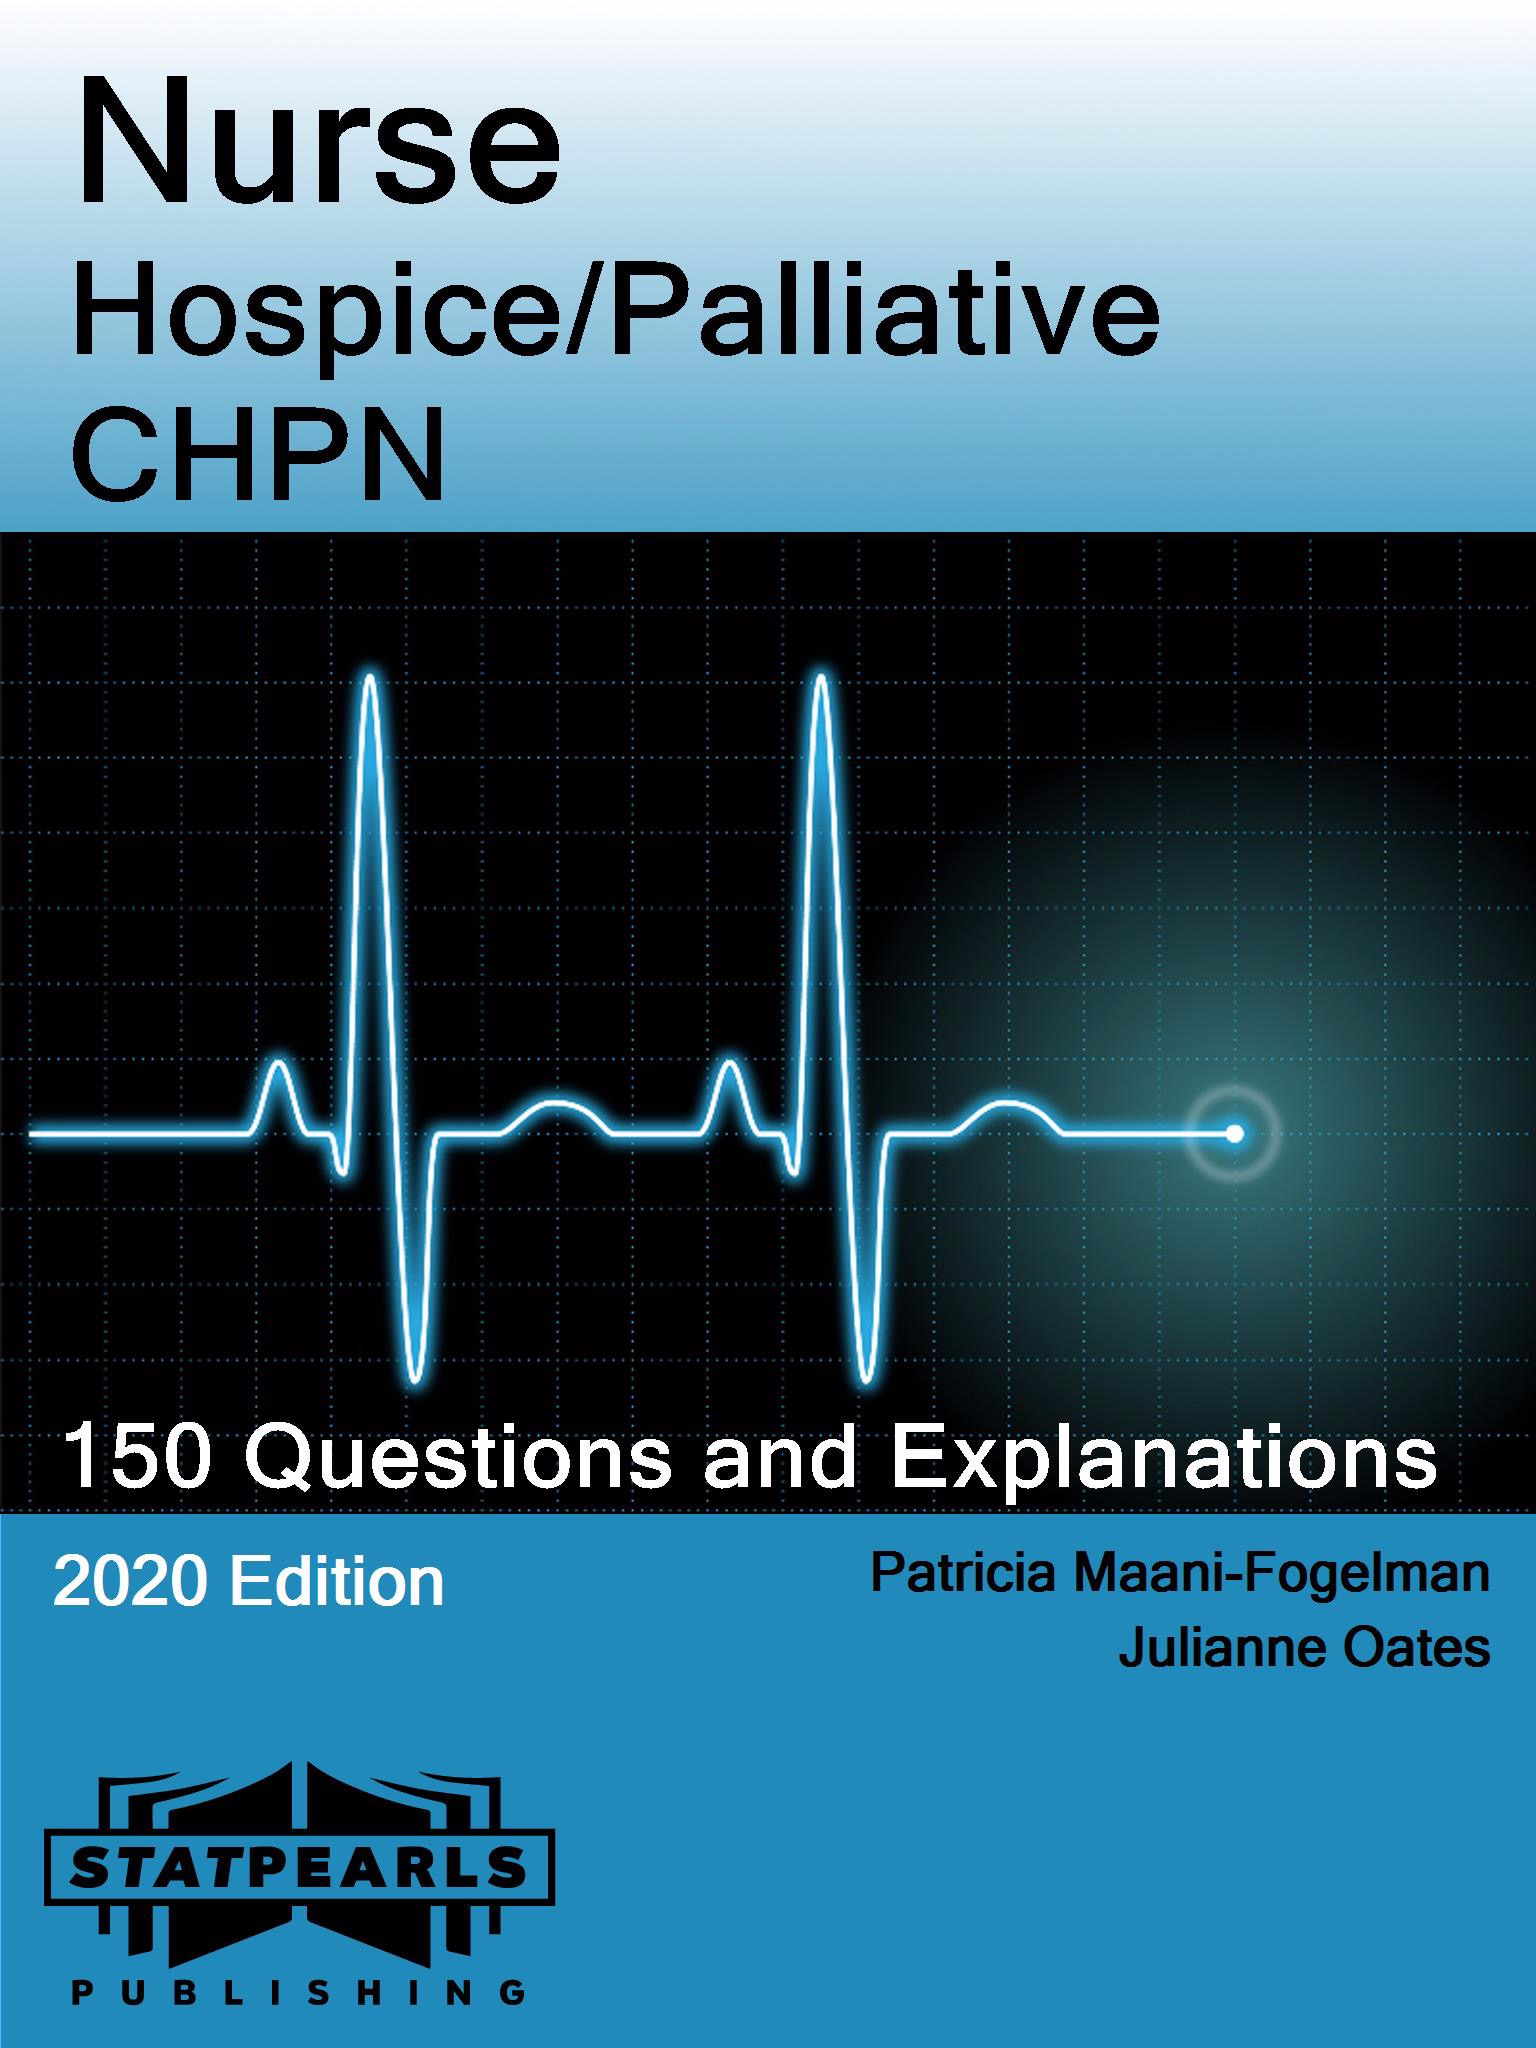 Nurse Hospice/Palliative CHPN